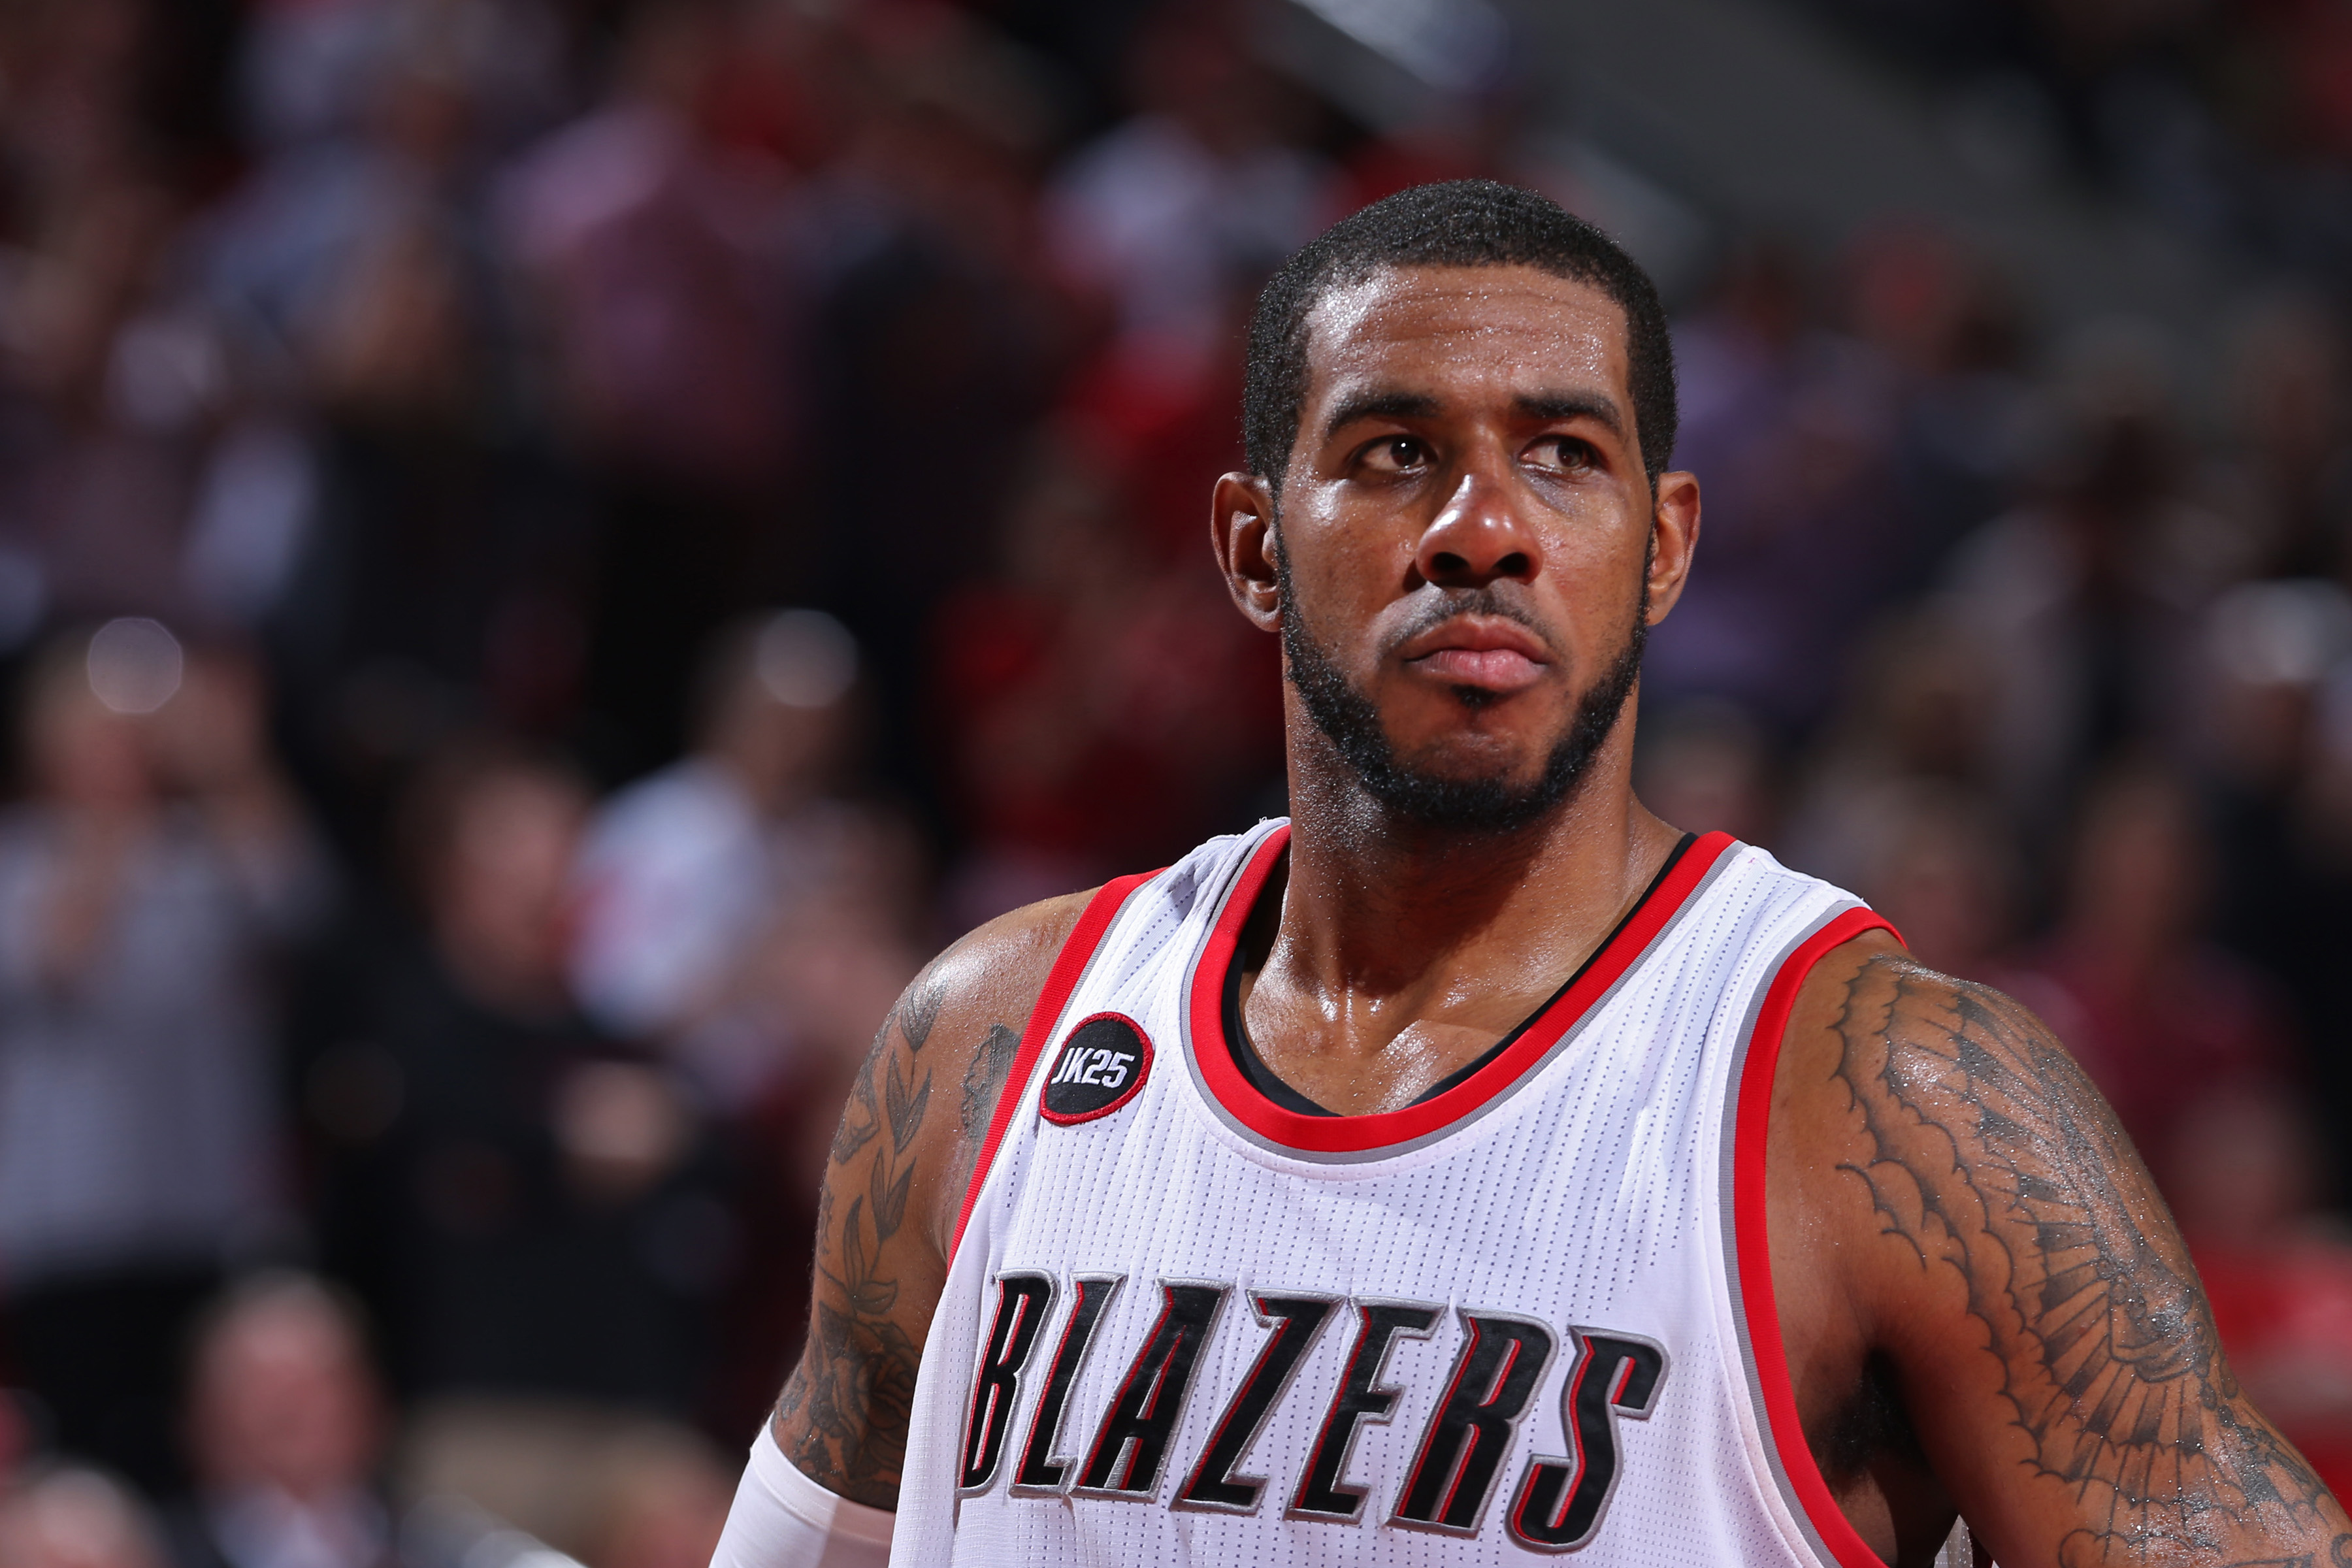 PORTLAND, OR - APRIL 27:   A close up shot of LaMarcus Aldridge #12 of the Portland Trail Blazers against the Memphis Grizzlies in Game Four of the Western Conference Quarterfinals during the 2015 NBA Playoffs on April 27, 2015 at the Moda Center in Portl